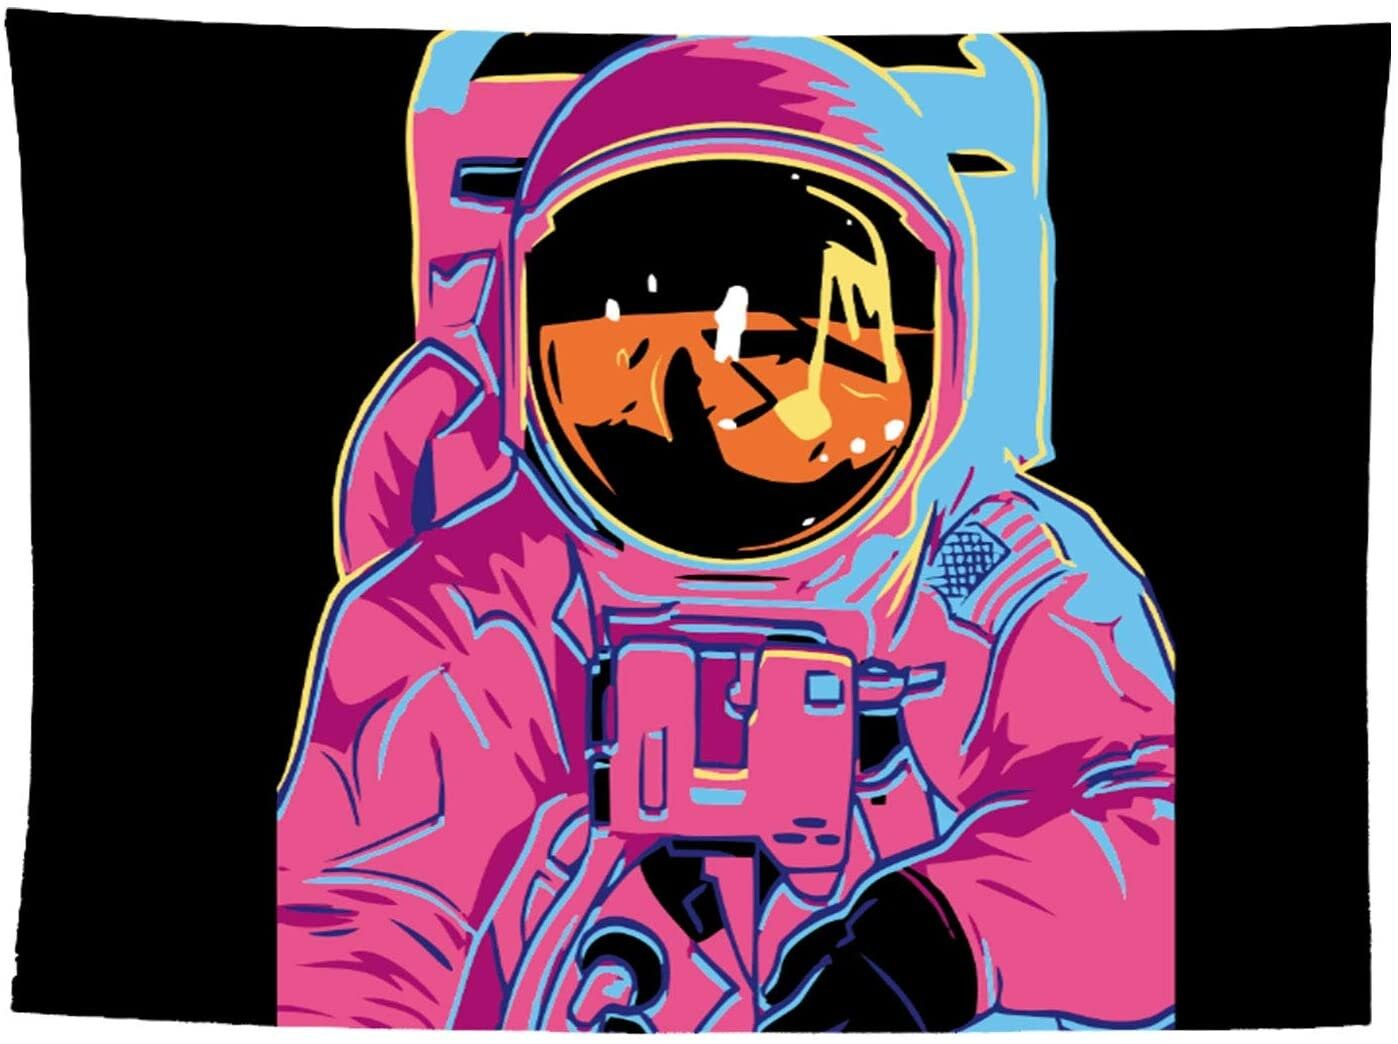 Astronaut Tapestry Wall Hanging Cool Spaceman Tapestry Colorful Anime Tapestry Wall Art for Guys Boys Children Dorm Bedroom